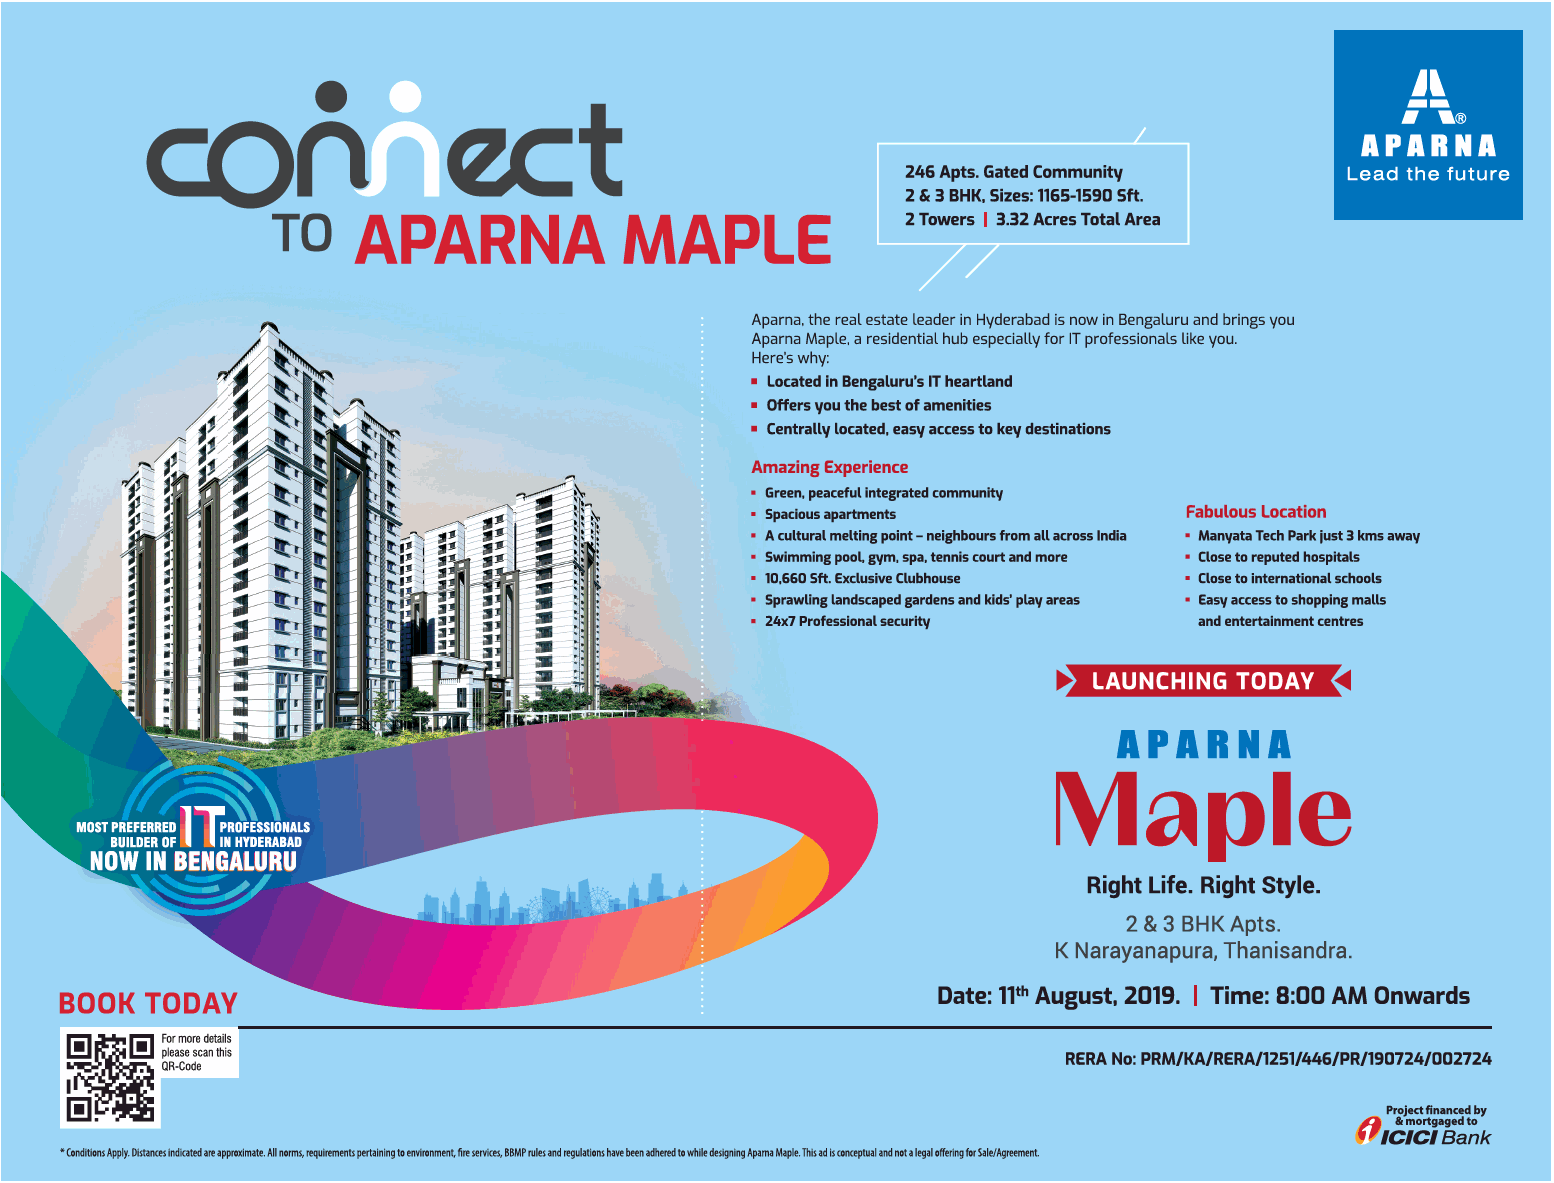 Launching today now at Aparna Maple in Bangalore